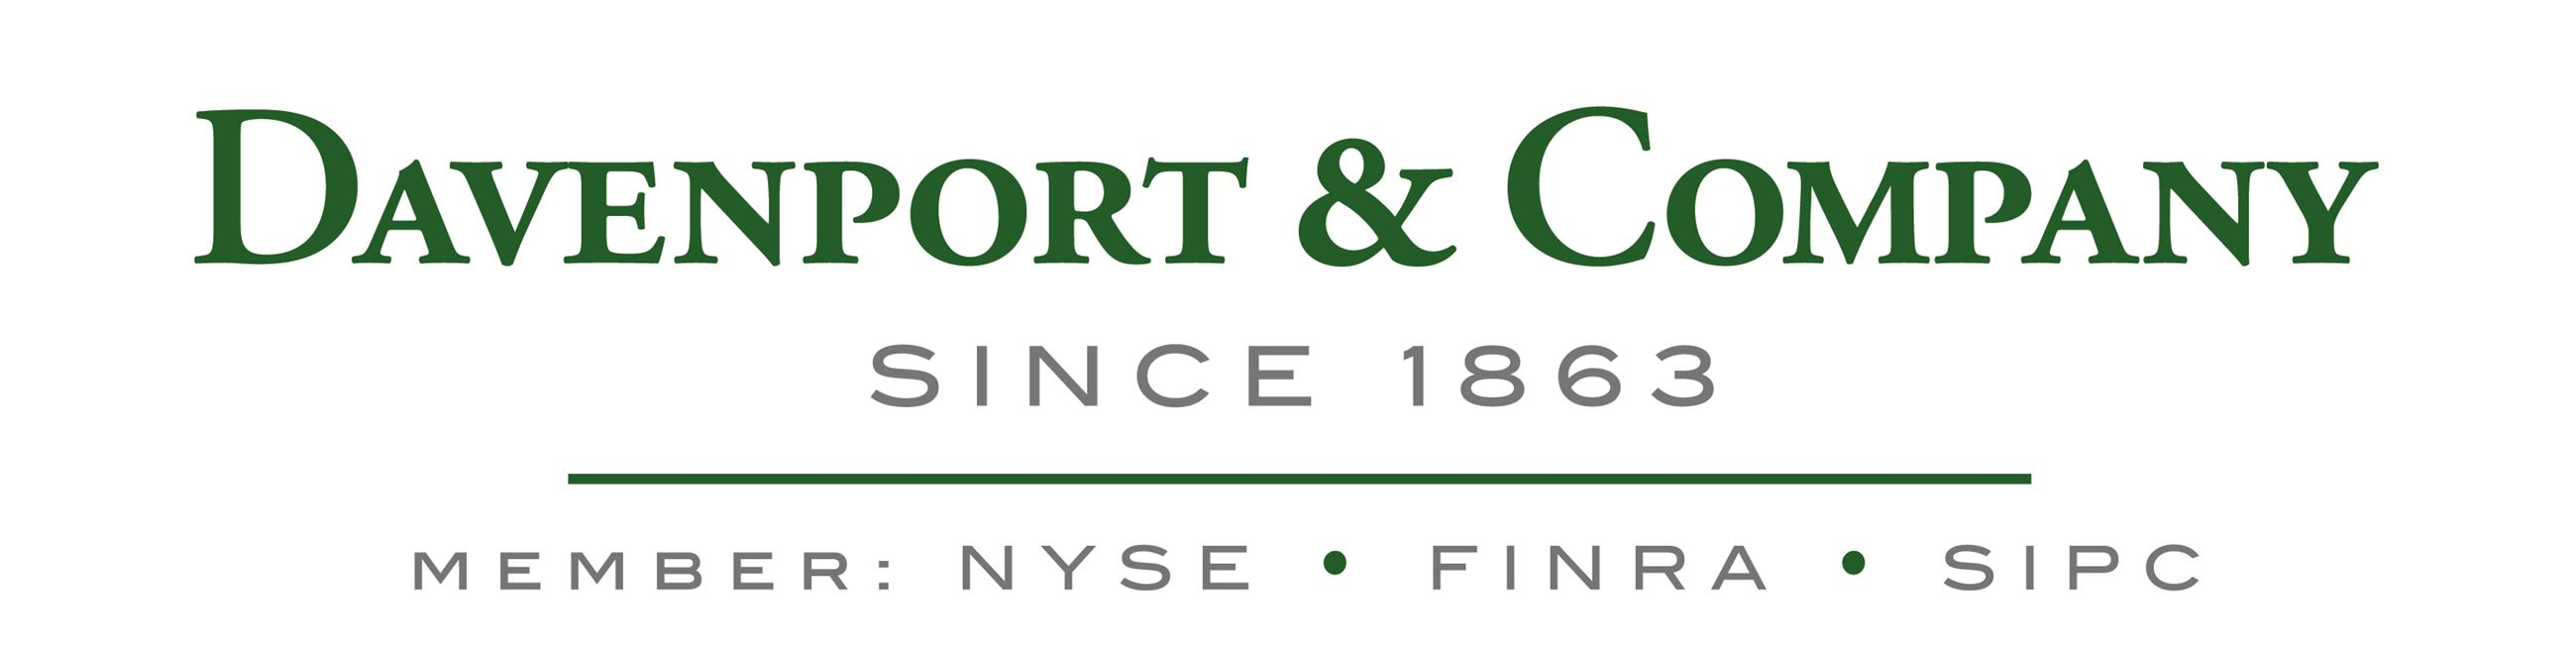 Davenport and Company Logo